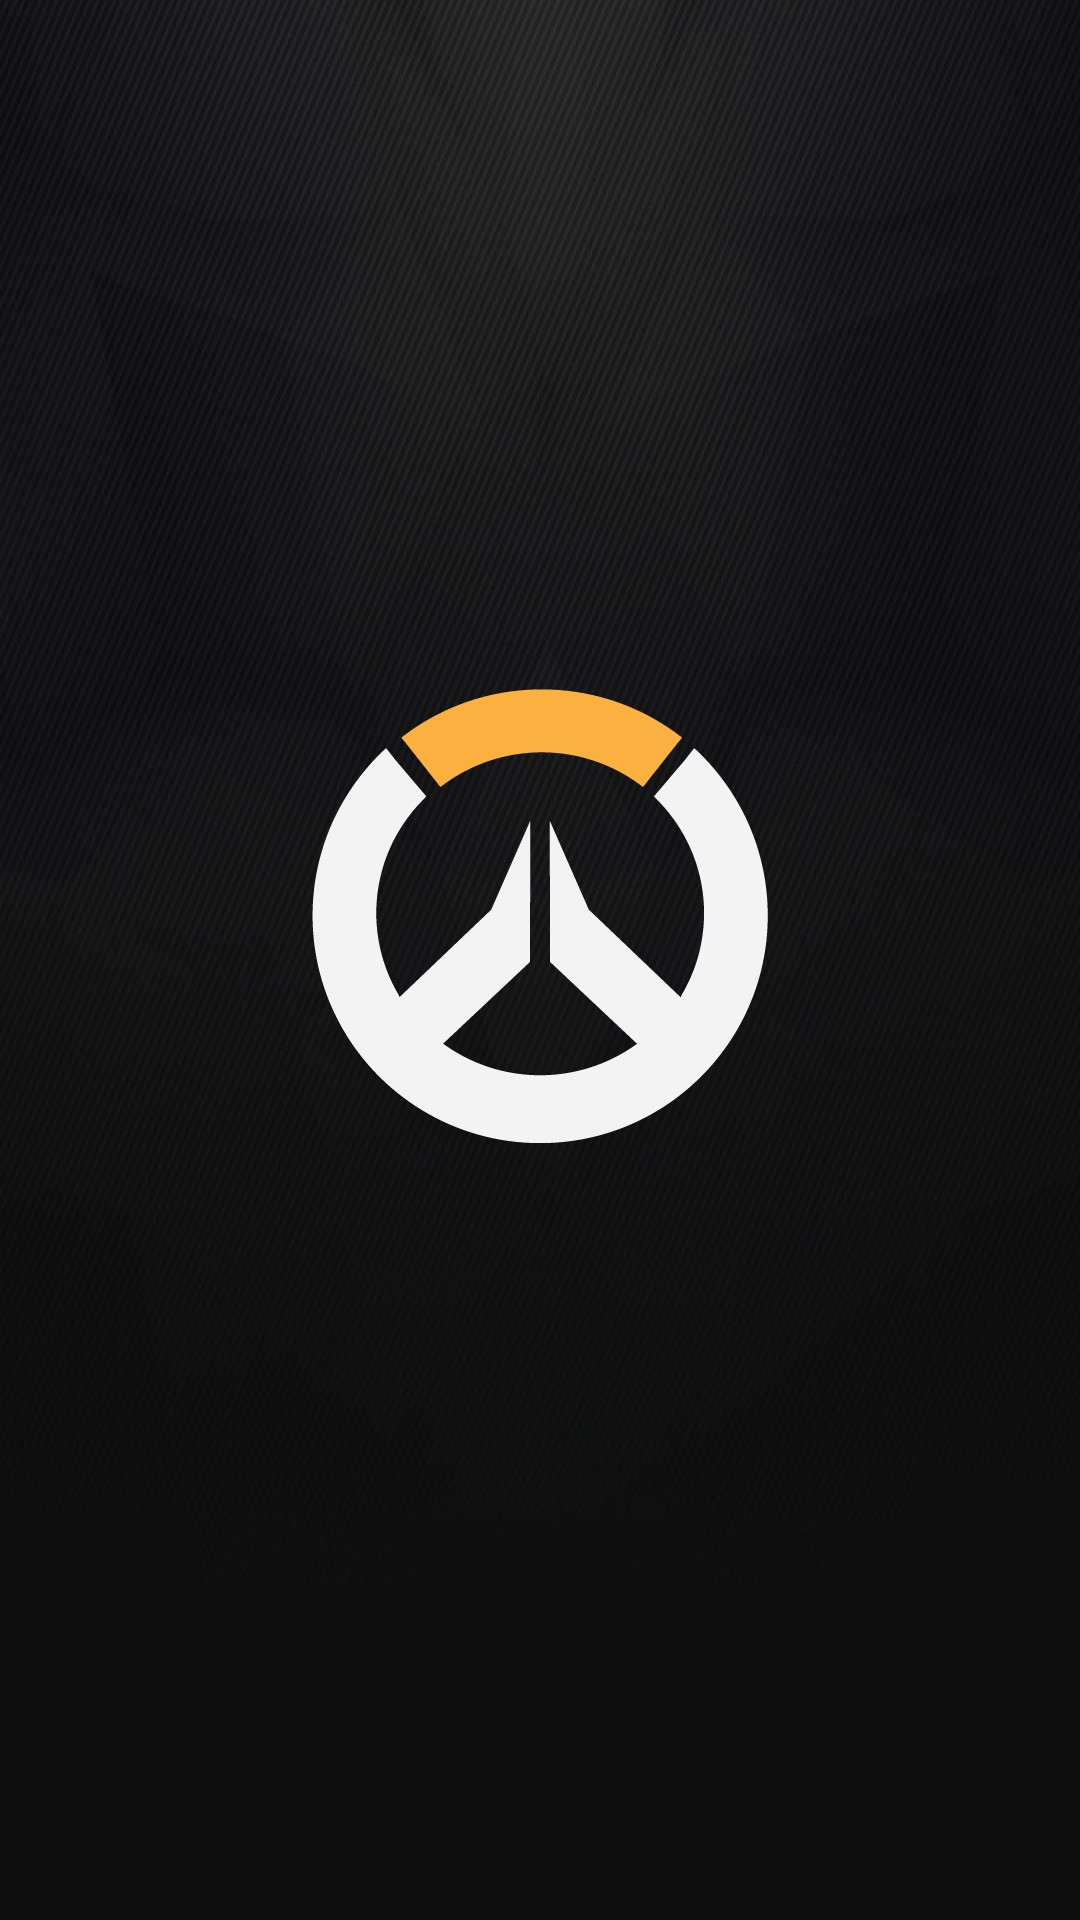 1080x1920 Beautiful Overwatch Wallpaper Phone For Hd